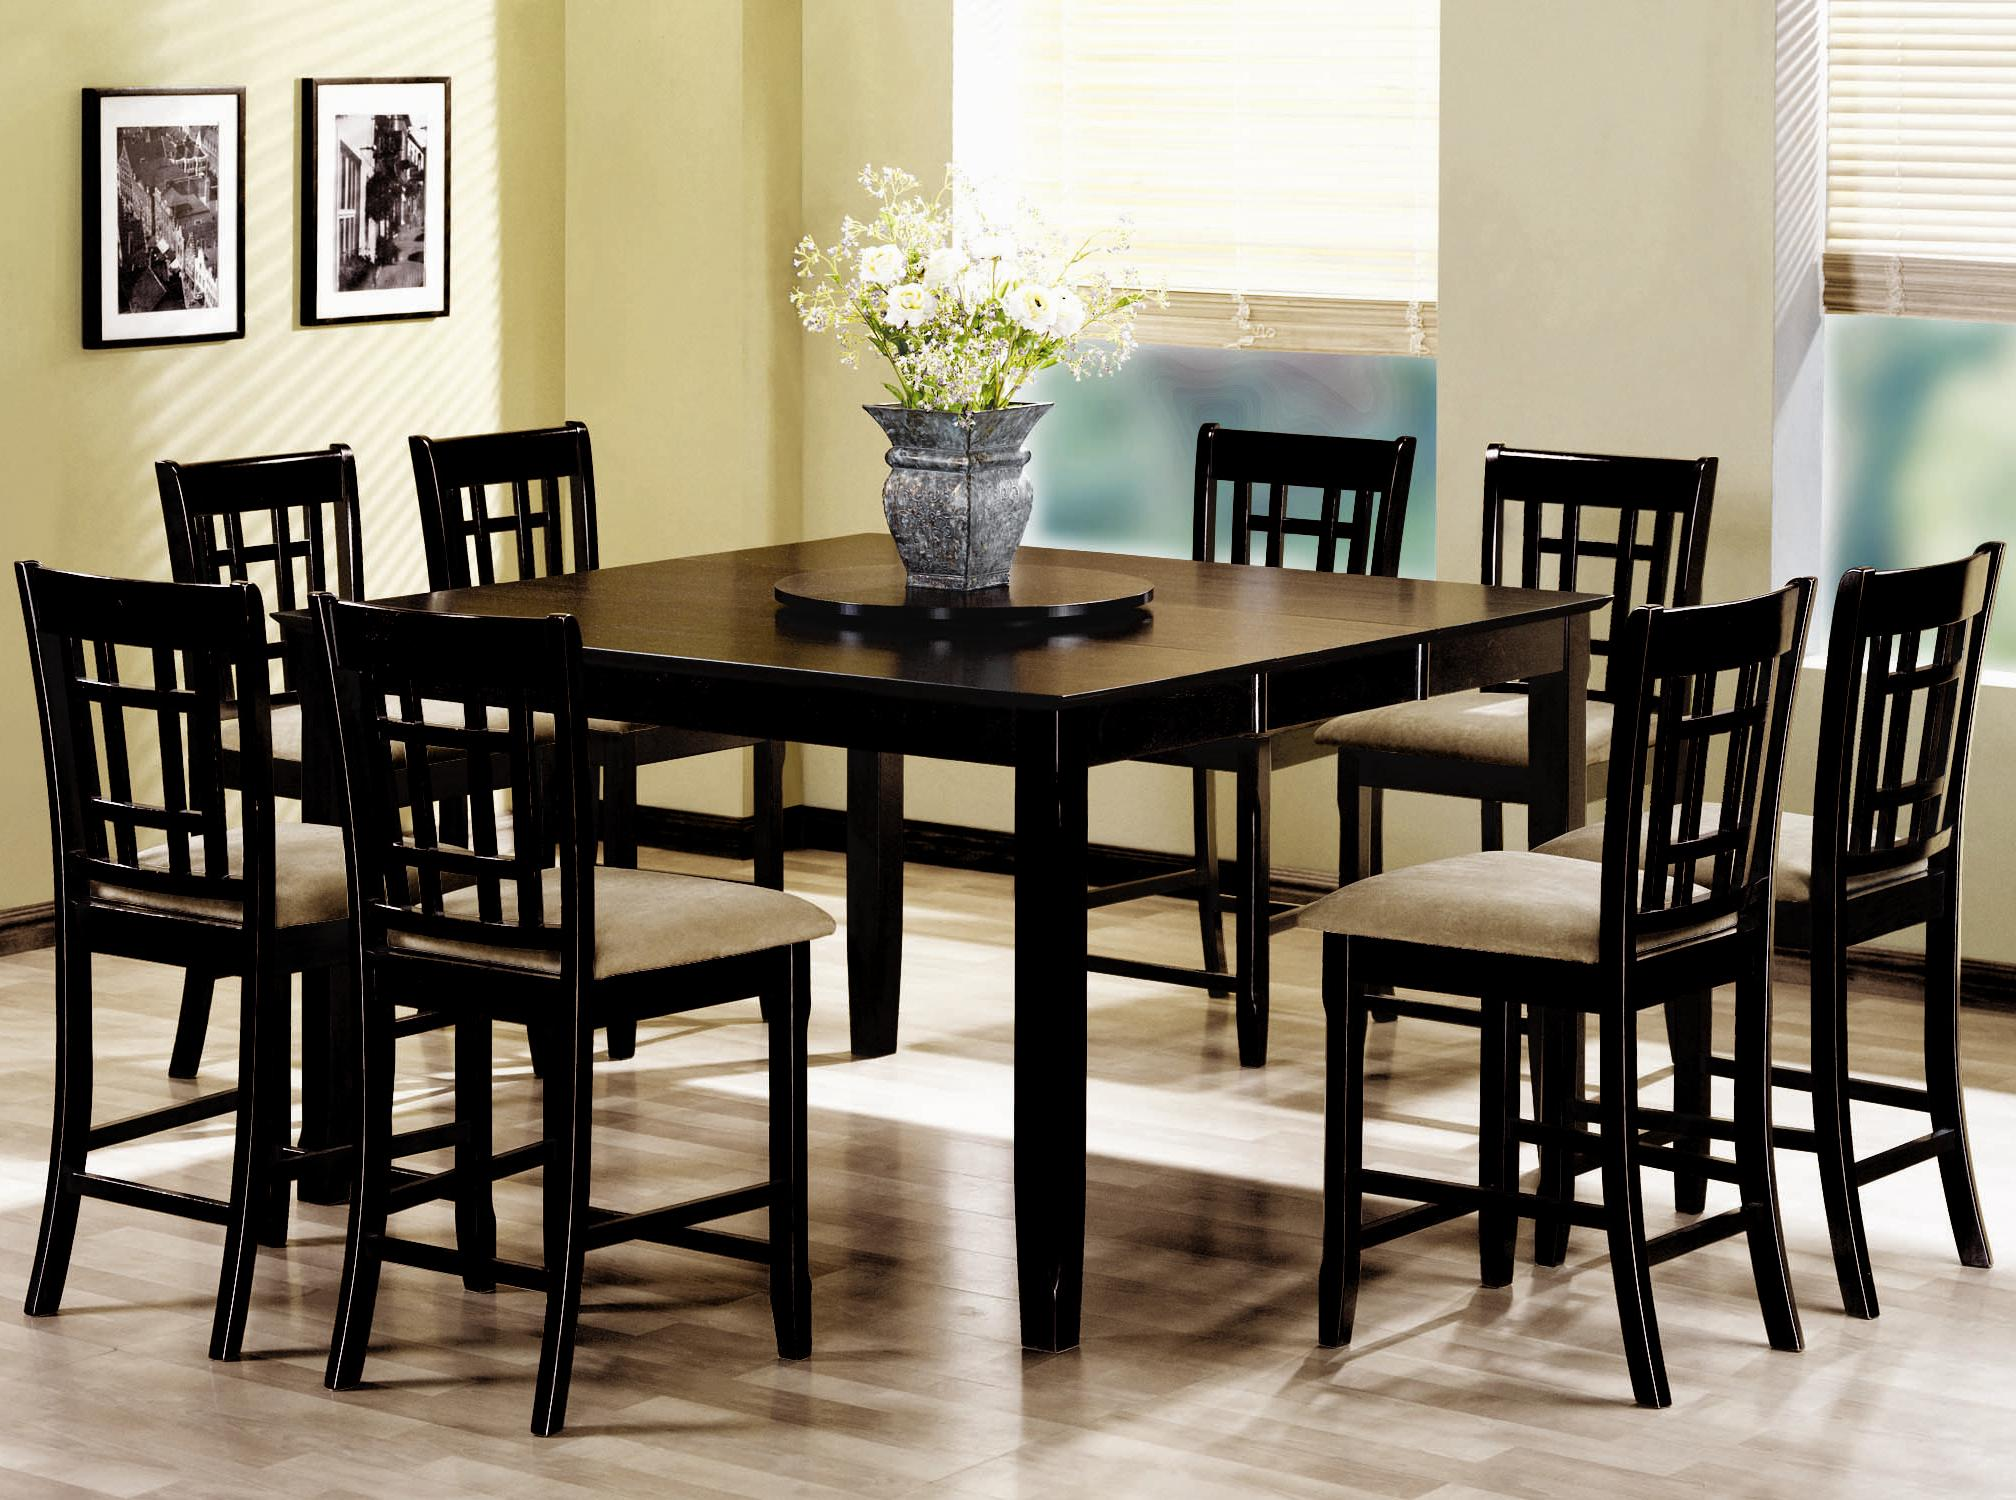 Counter height dinette sets homesfeed for Dinette set with bench